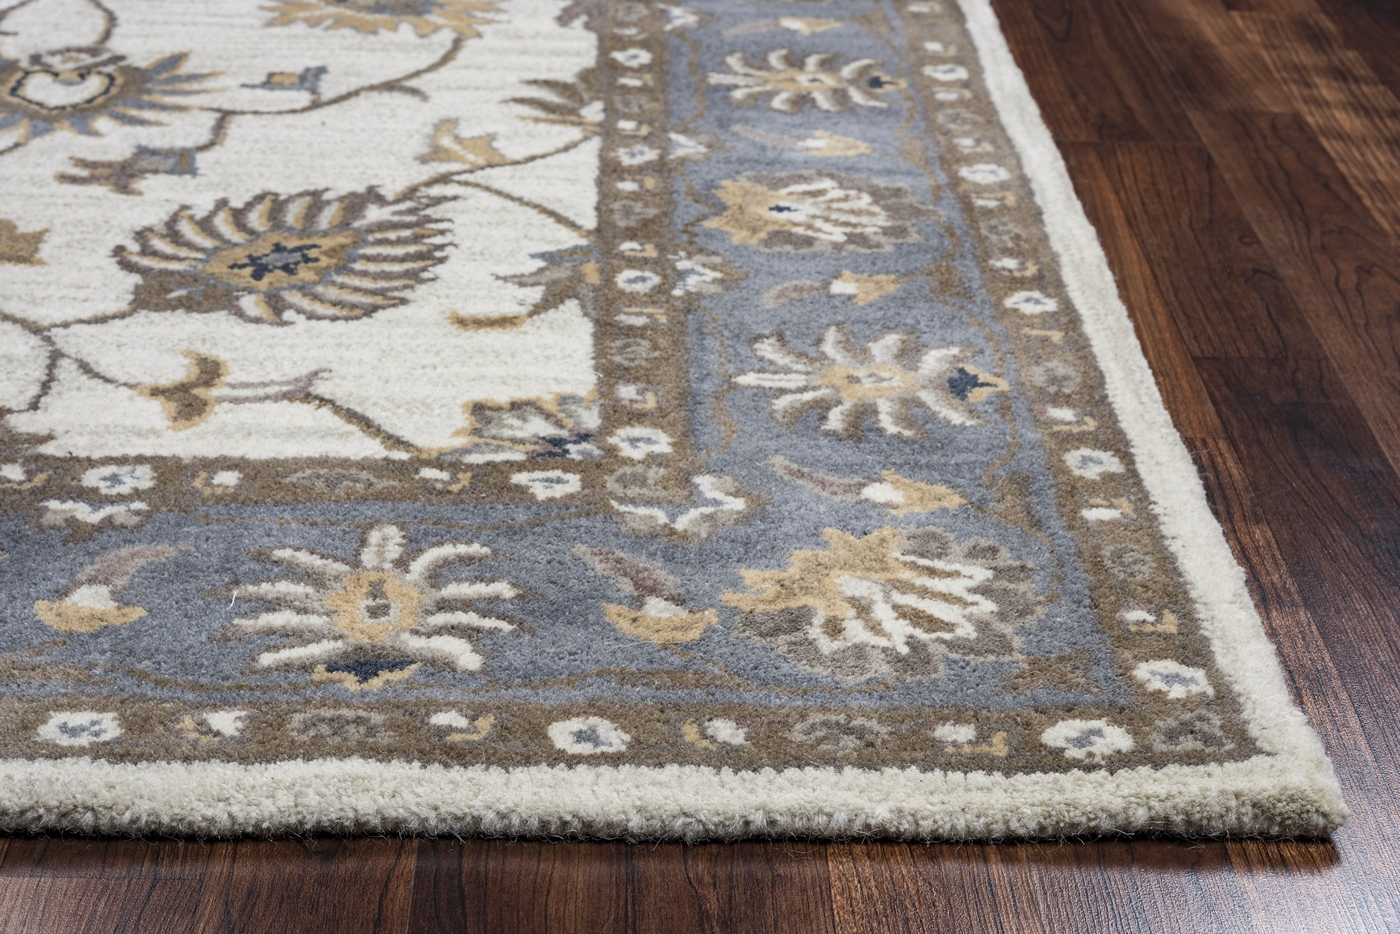 Grey Tan And Brown Area Rug: Valintino Floral Vine Border Wool Runner Rug In Taupe Blue